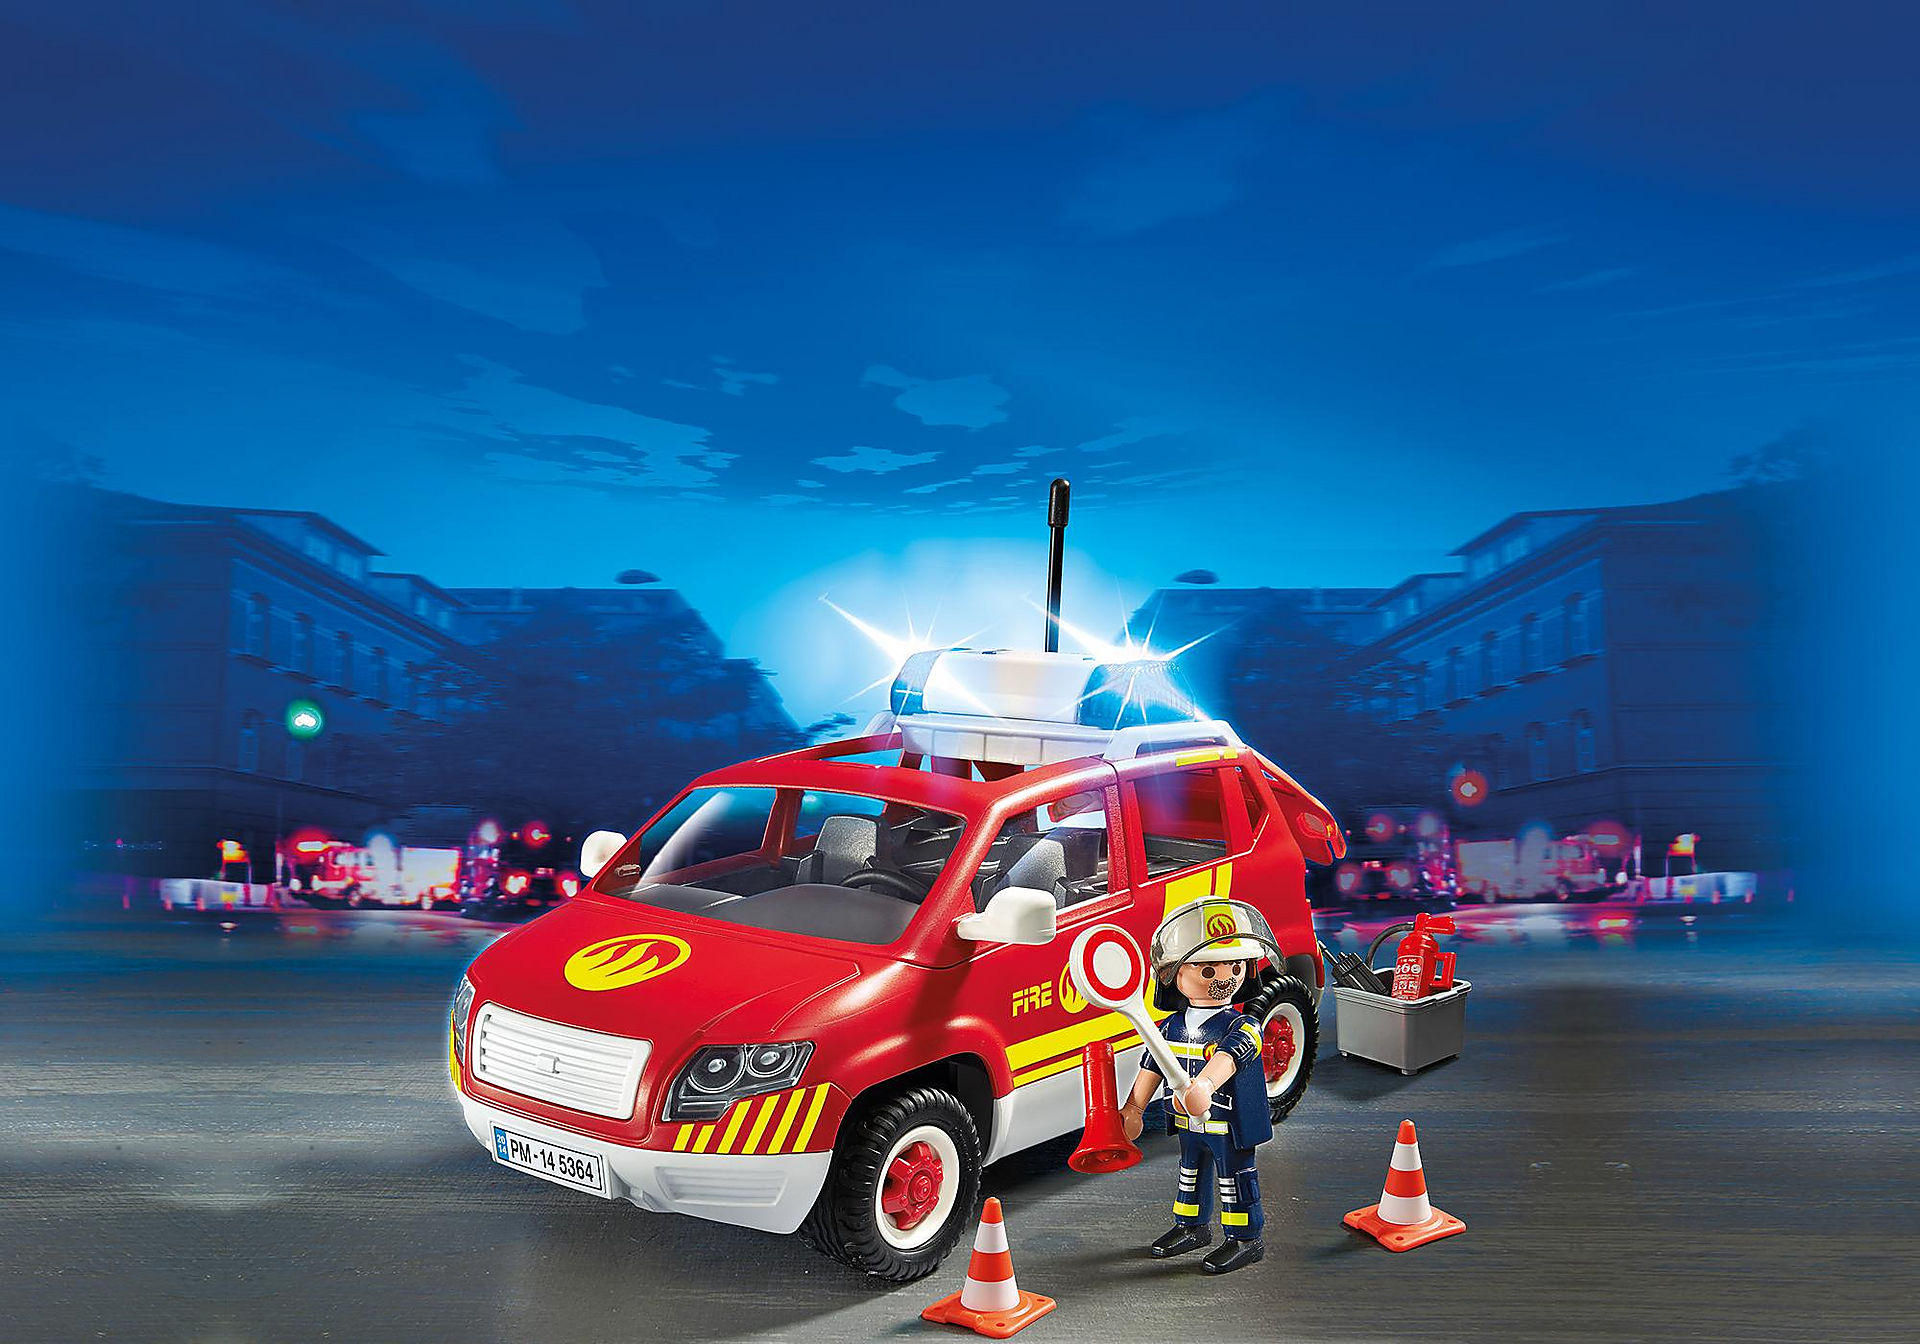 http://media.playmobil.com/i/playmobil/5364_product_detail/Fire Chief´s Car with Lights and Sound